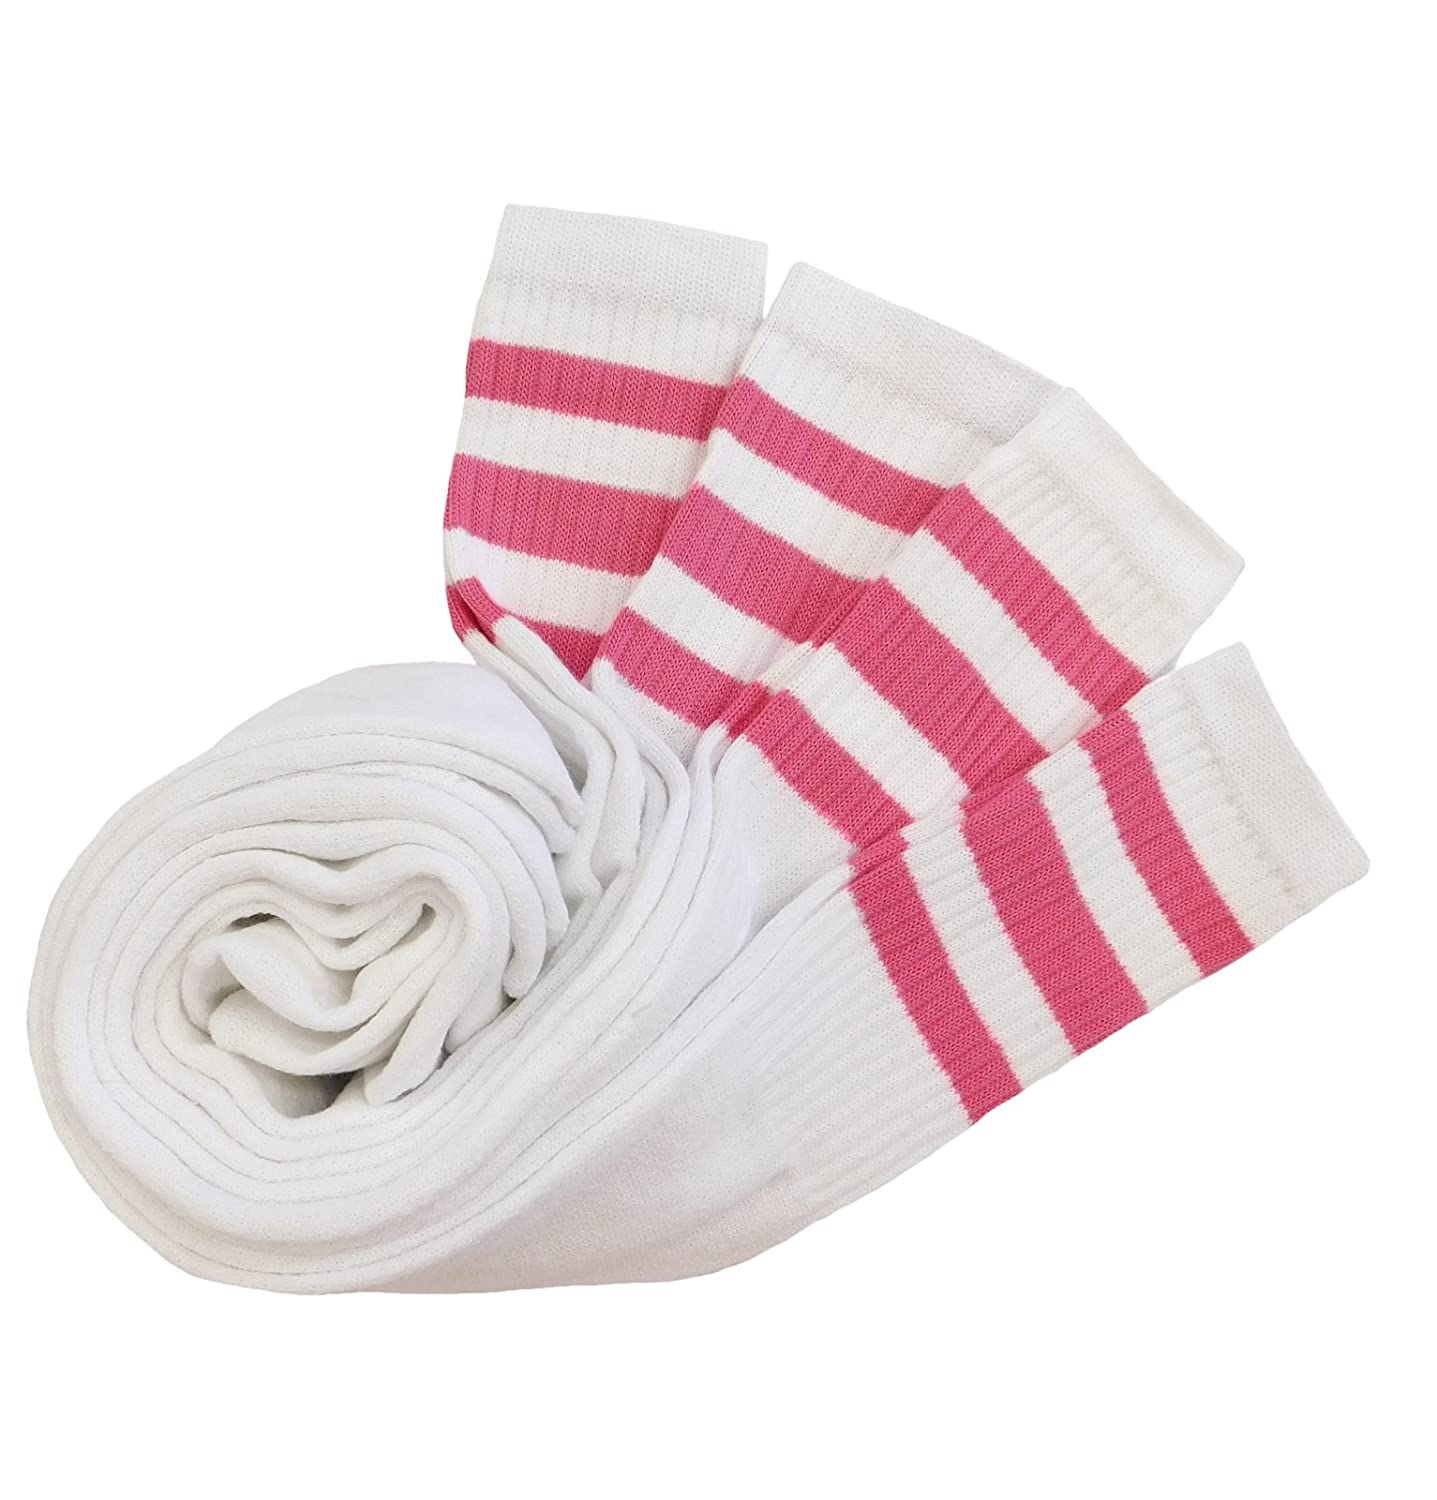 TUBE SOCKS 22LONG 8-PAIRS WHITE WITH 3 PINK STRIPES